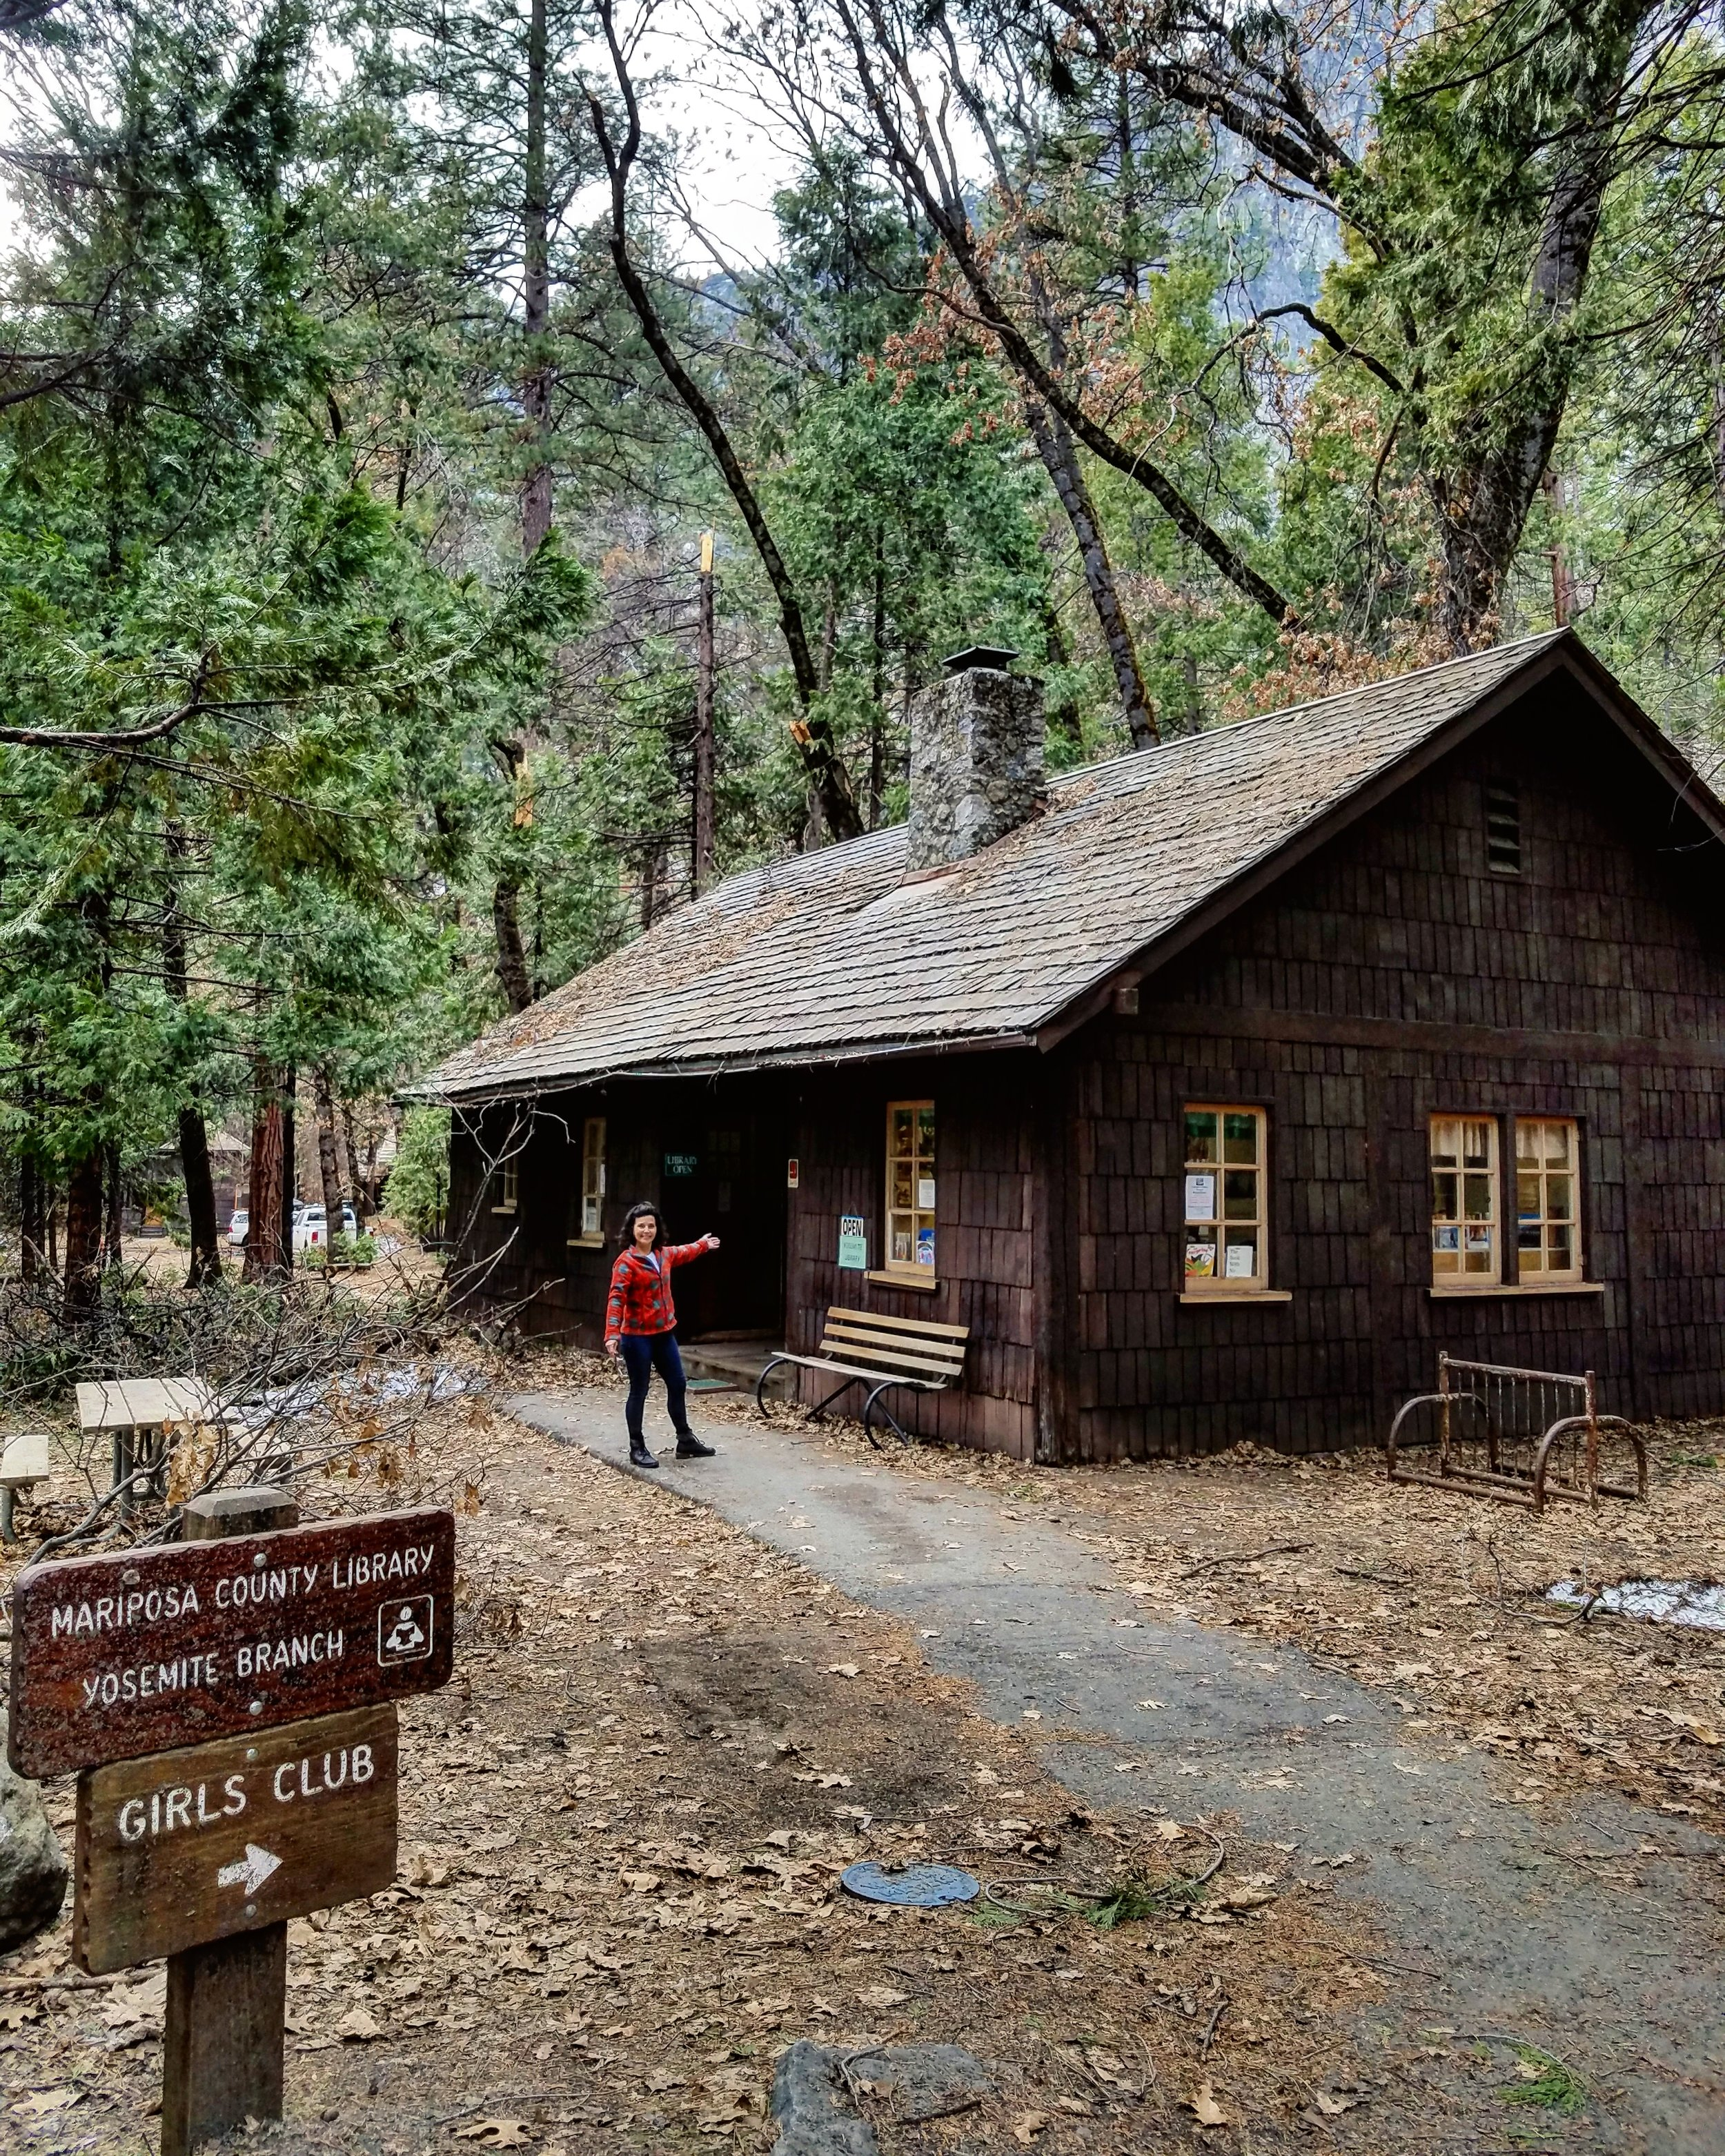 Yosemite Valley Library and Girls Club